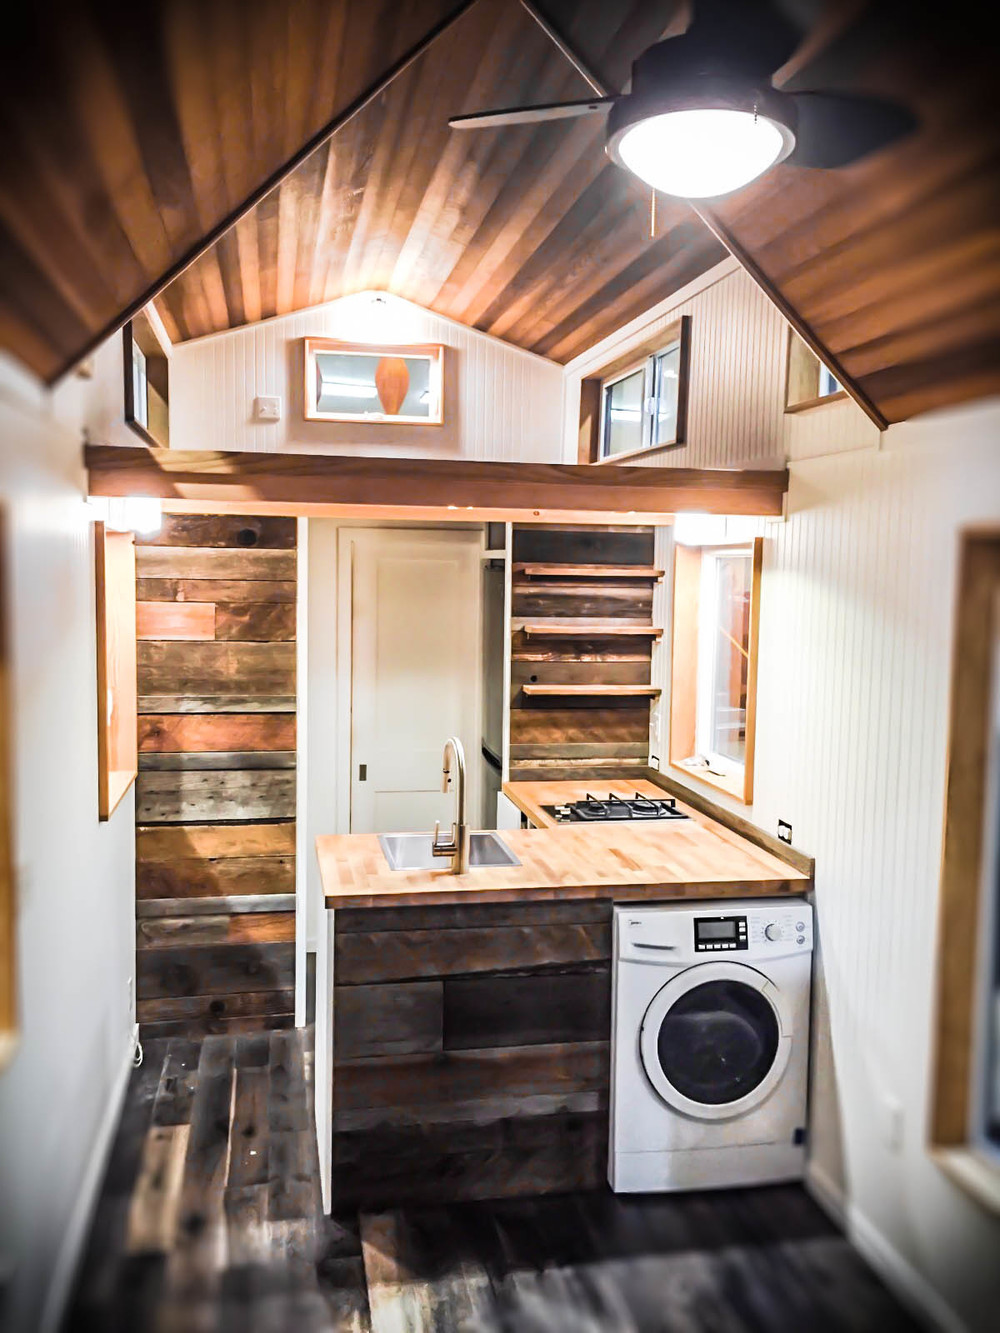 Tiny home kitchen -  Kootenay Inteiror View Of Kitchen By Green Leaf Tiny Homes